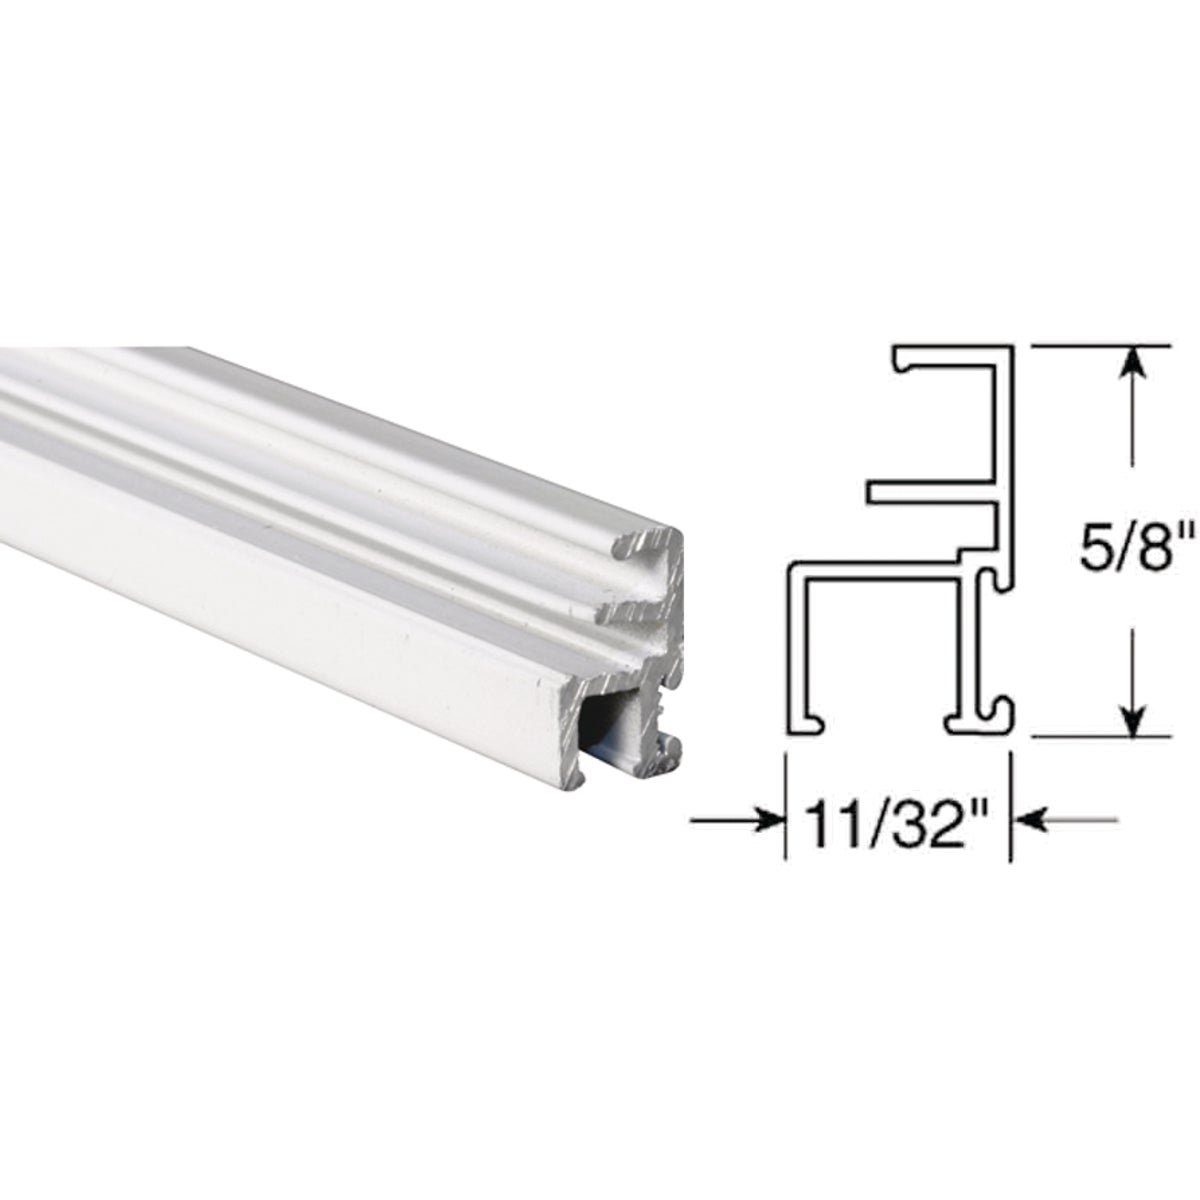 11/32X5/8 T&S TT S FRAME - PL14203 by Prime Line Products